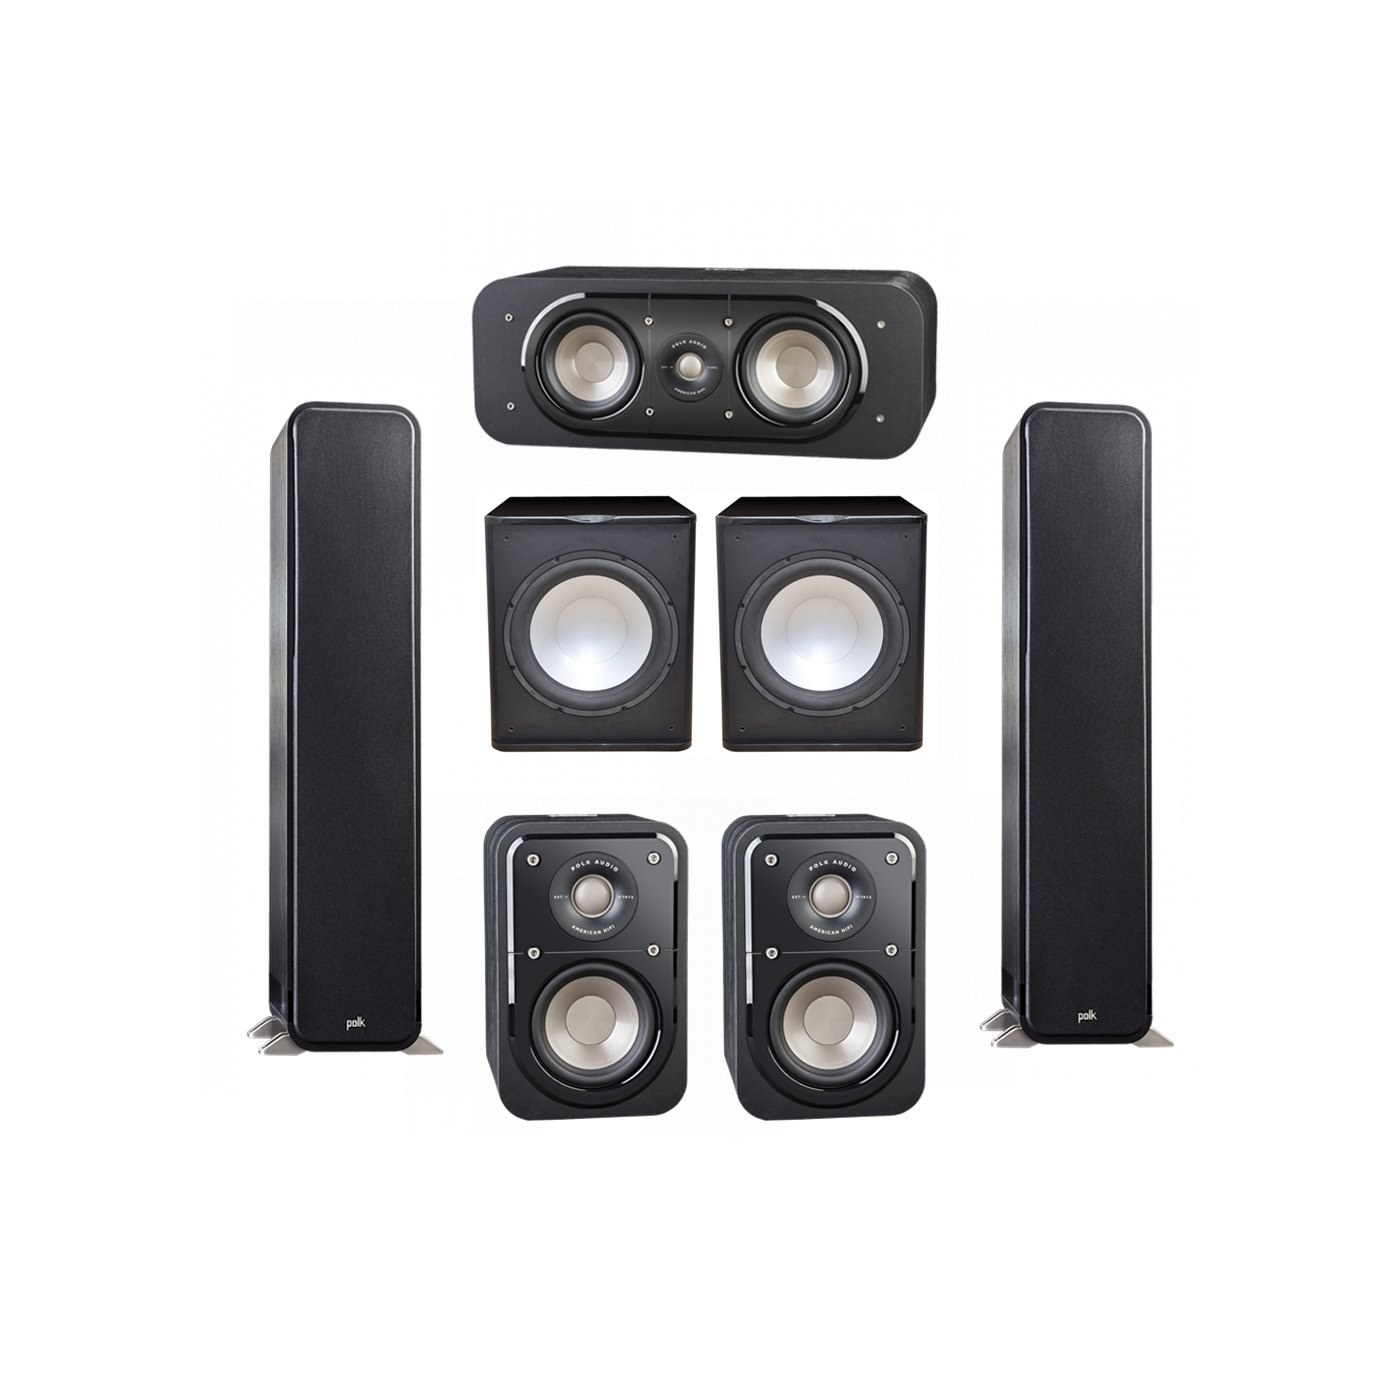 Polk Audio Signature 5.2 System with 2 S55 Tower Speaker, 1 Polk S30 Center Speaker, 2 Polk S10 Surround Speaker, 2 Premier Acoustic PA-150 Powered Subwoofer